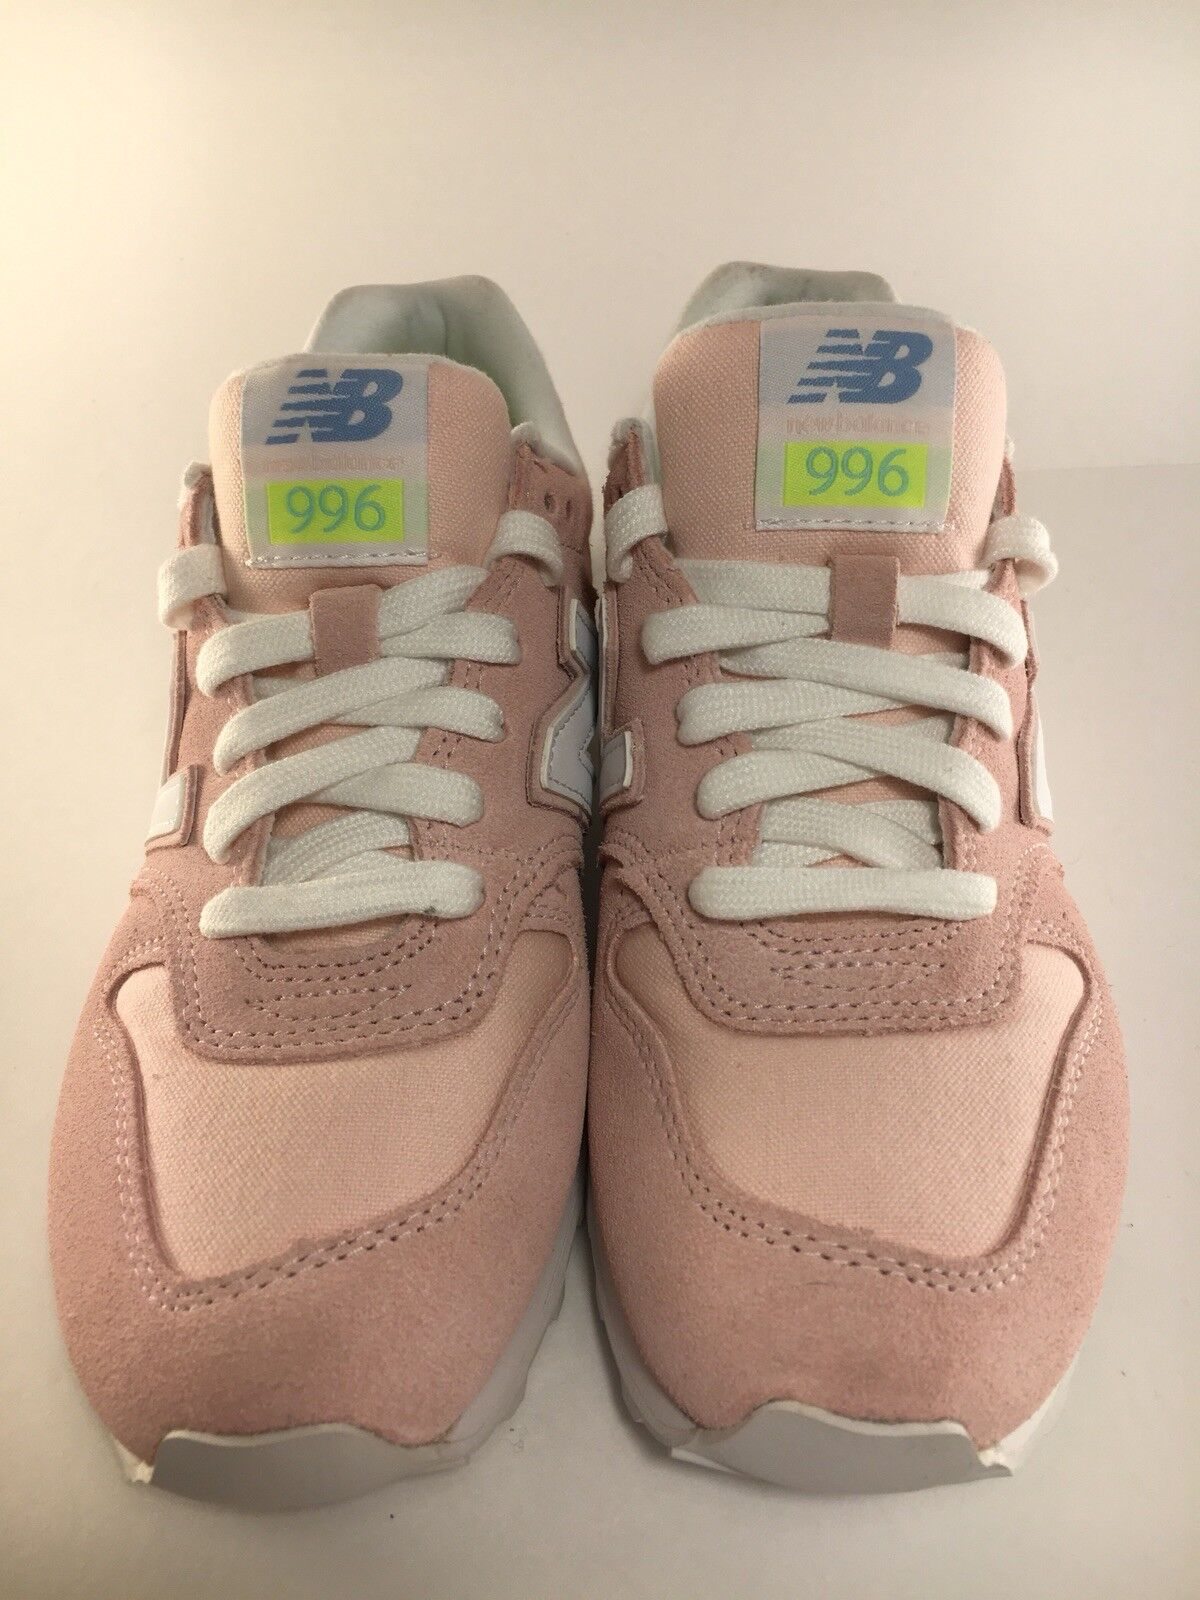 NEW BALANCE 996 WR996OSB PINK SUEDE WOMEN'S SHOES SNEAKER TRAINER SIZE 5.5